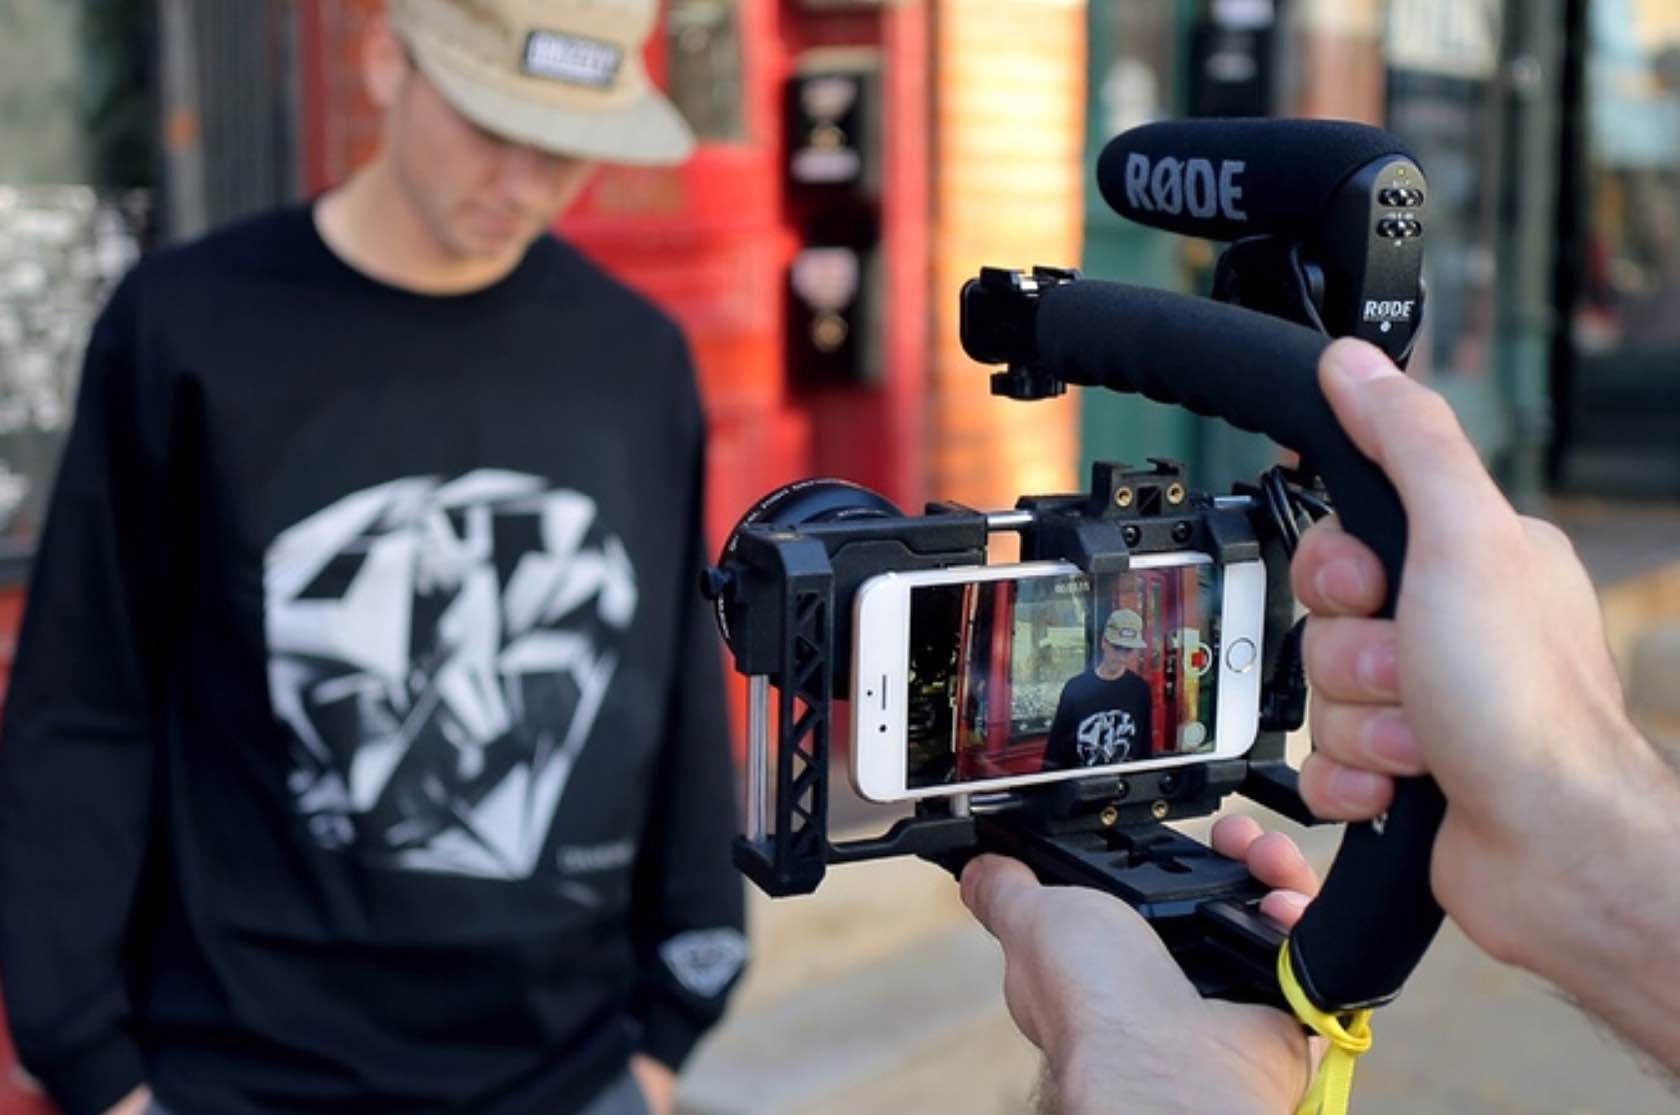 beastgrip-pro-camera-rig-system-for-iphone-3